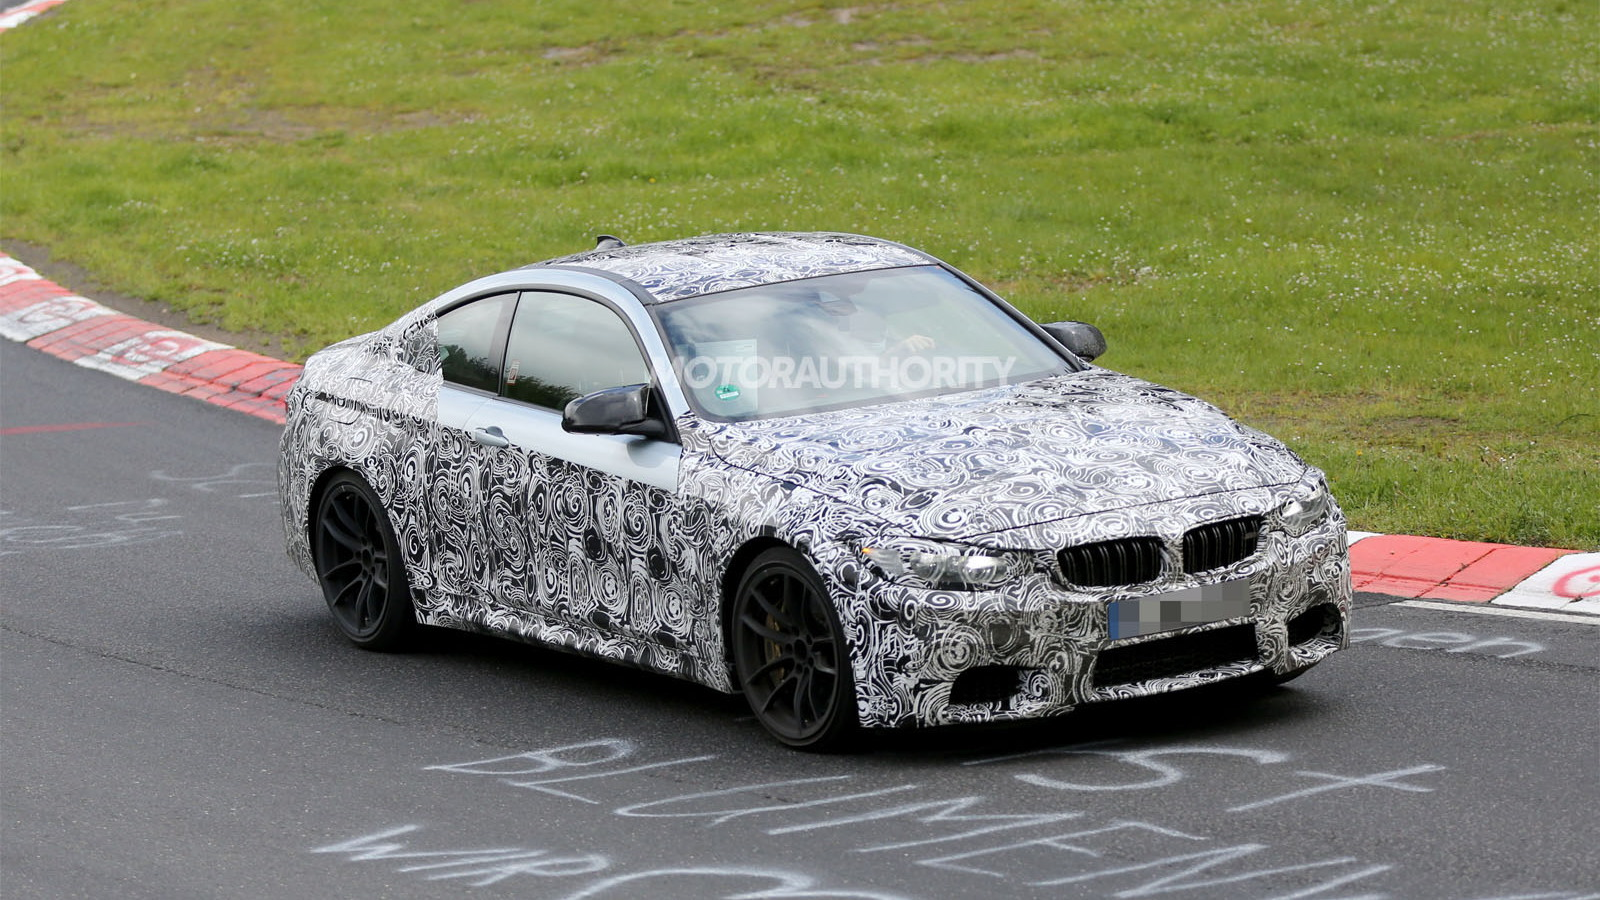 2014 BMW M4 spy shots